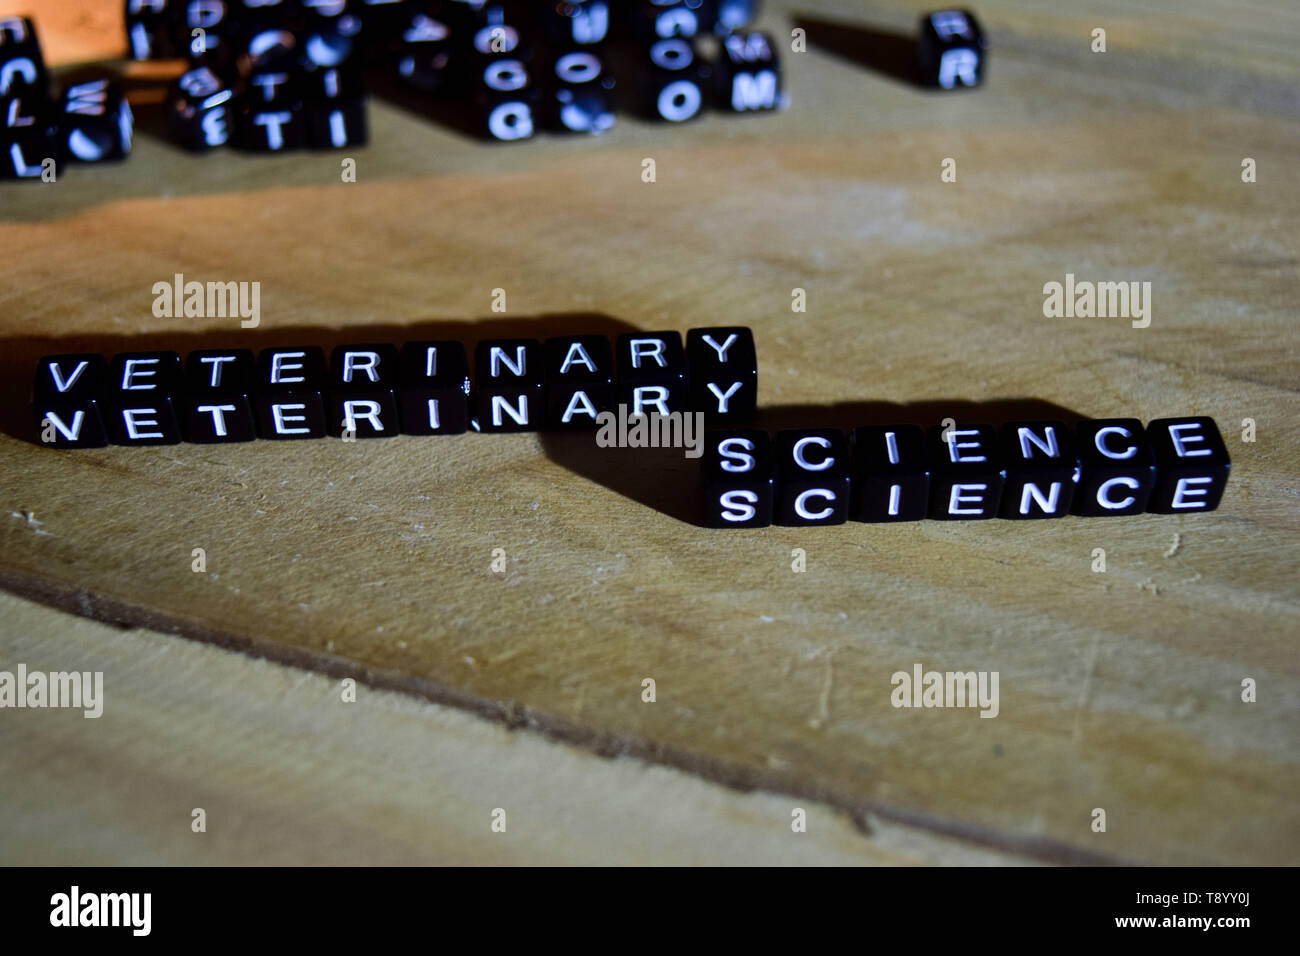 VETERINARY SCIENCE concept wooden blocks on the table. With personal development, education and motivation concept on blurred background - Stock Image